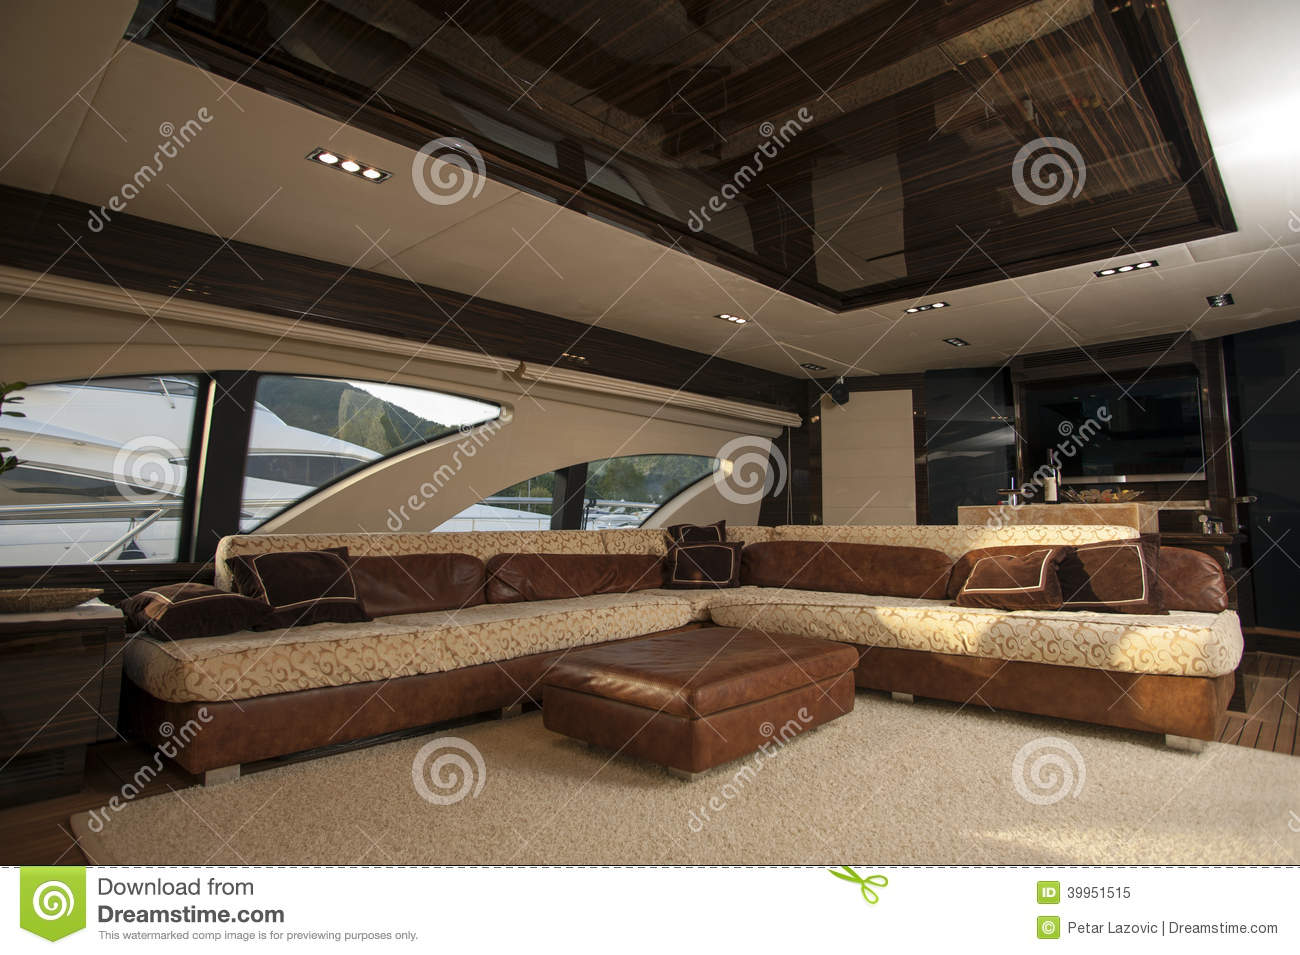 of luxury ship interior, comfortable sailboat cabin, expensive wooden ...